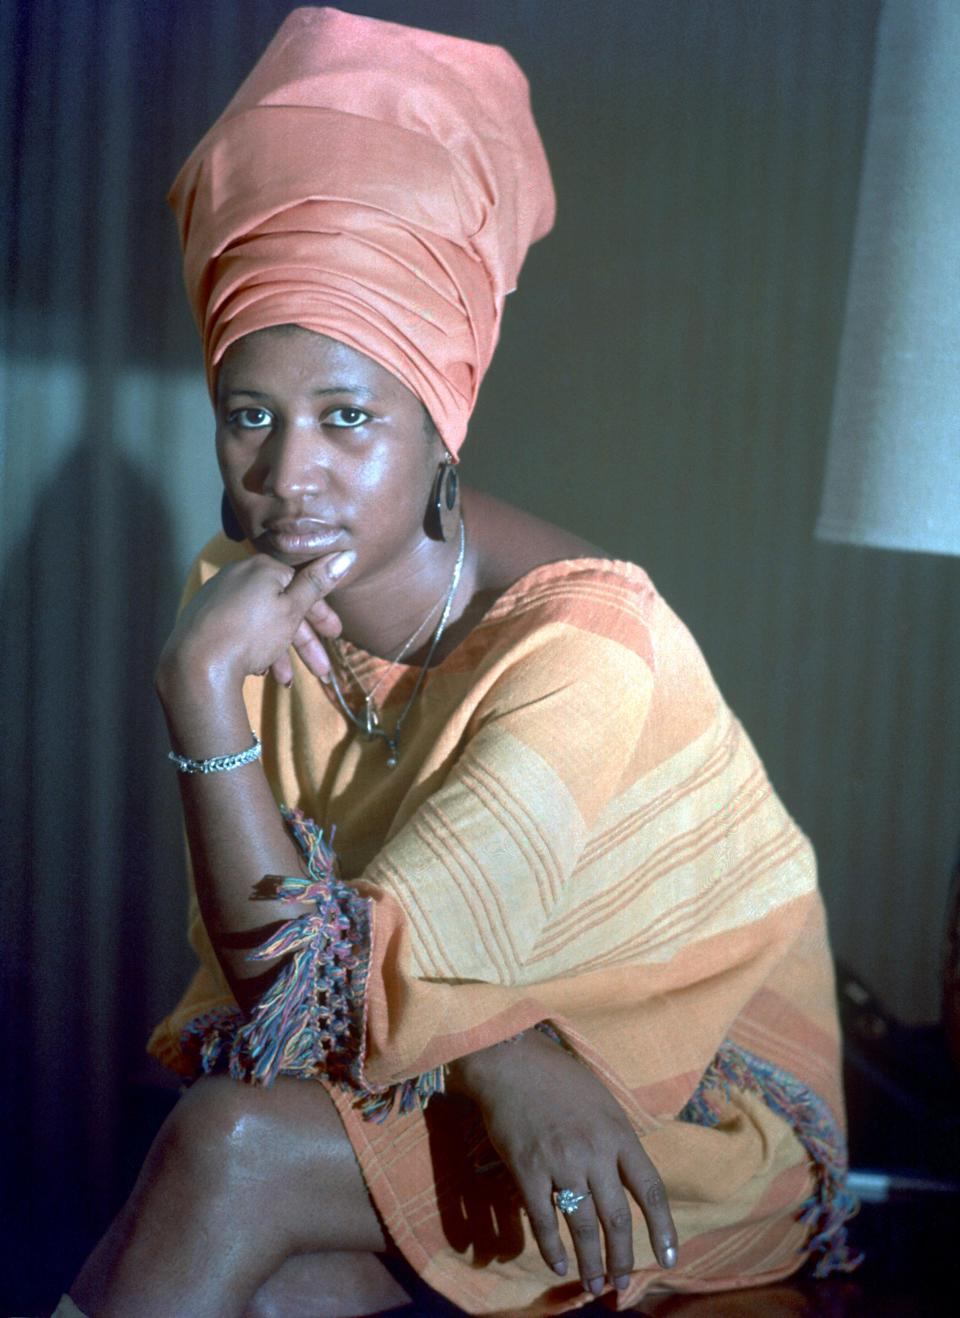 <p>Aretha Franklin poses for a portrait wearing a towering turban and colorful caftan. (Photo by Michael Ochs Archives/Getty Images) </p>